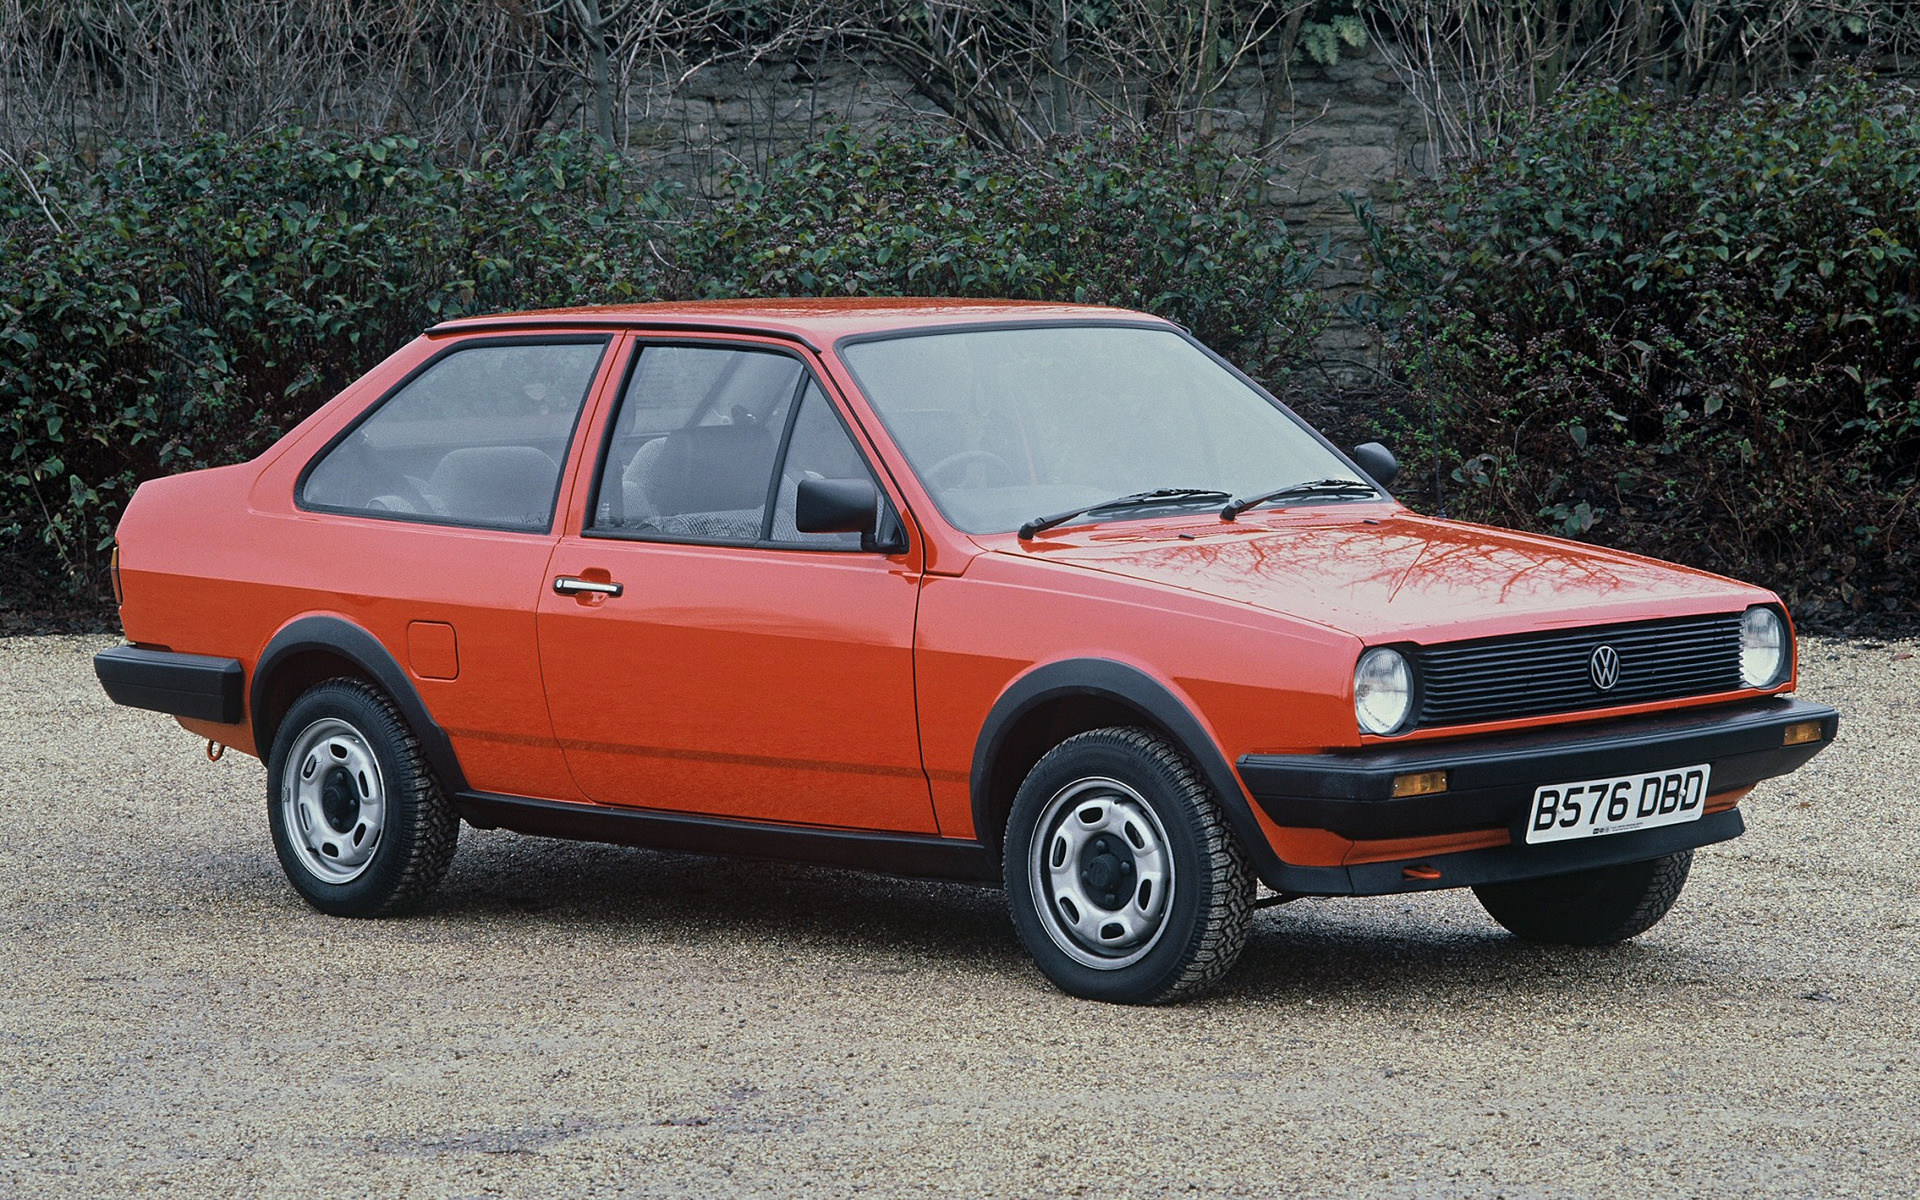 Volkswagen Polo Classic (1985) Wallpapers and HD Images ...